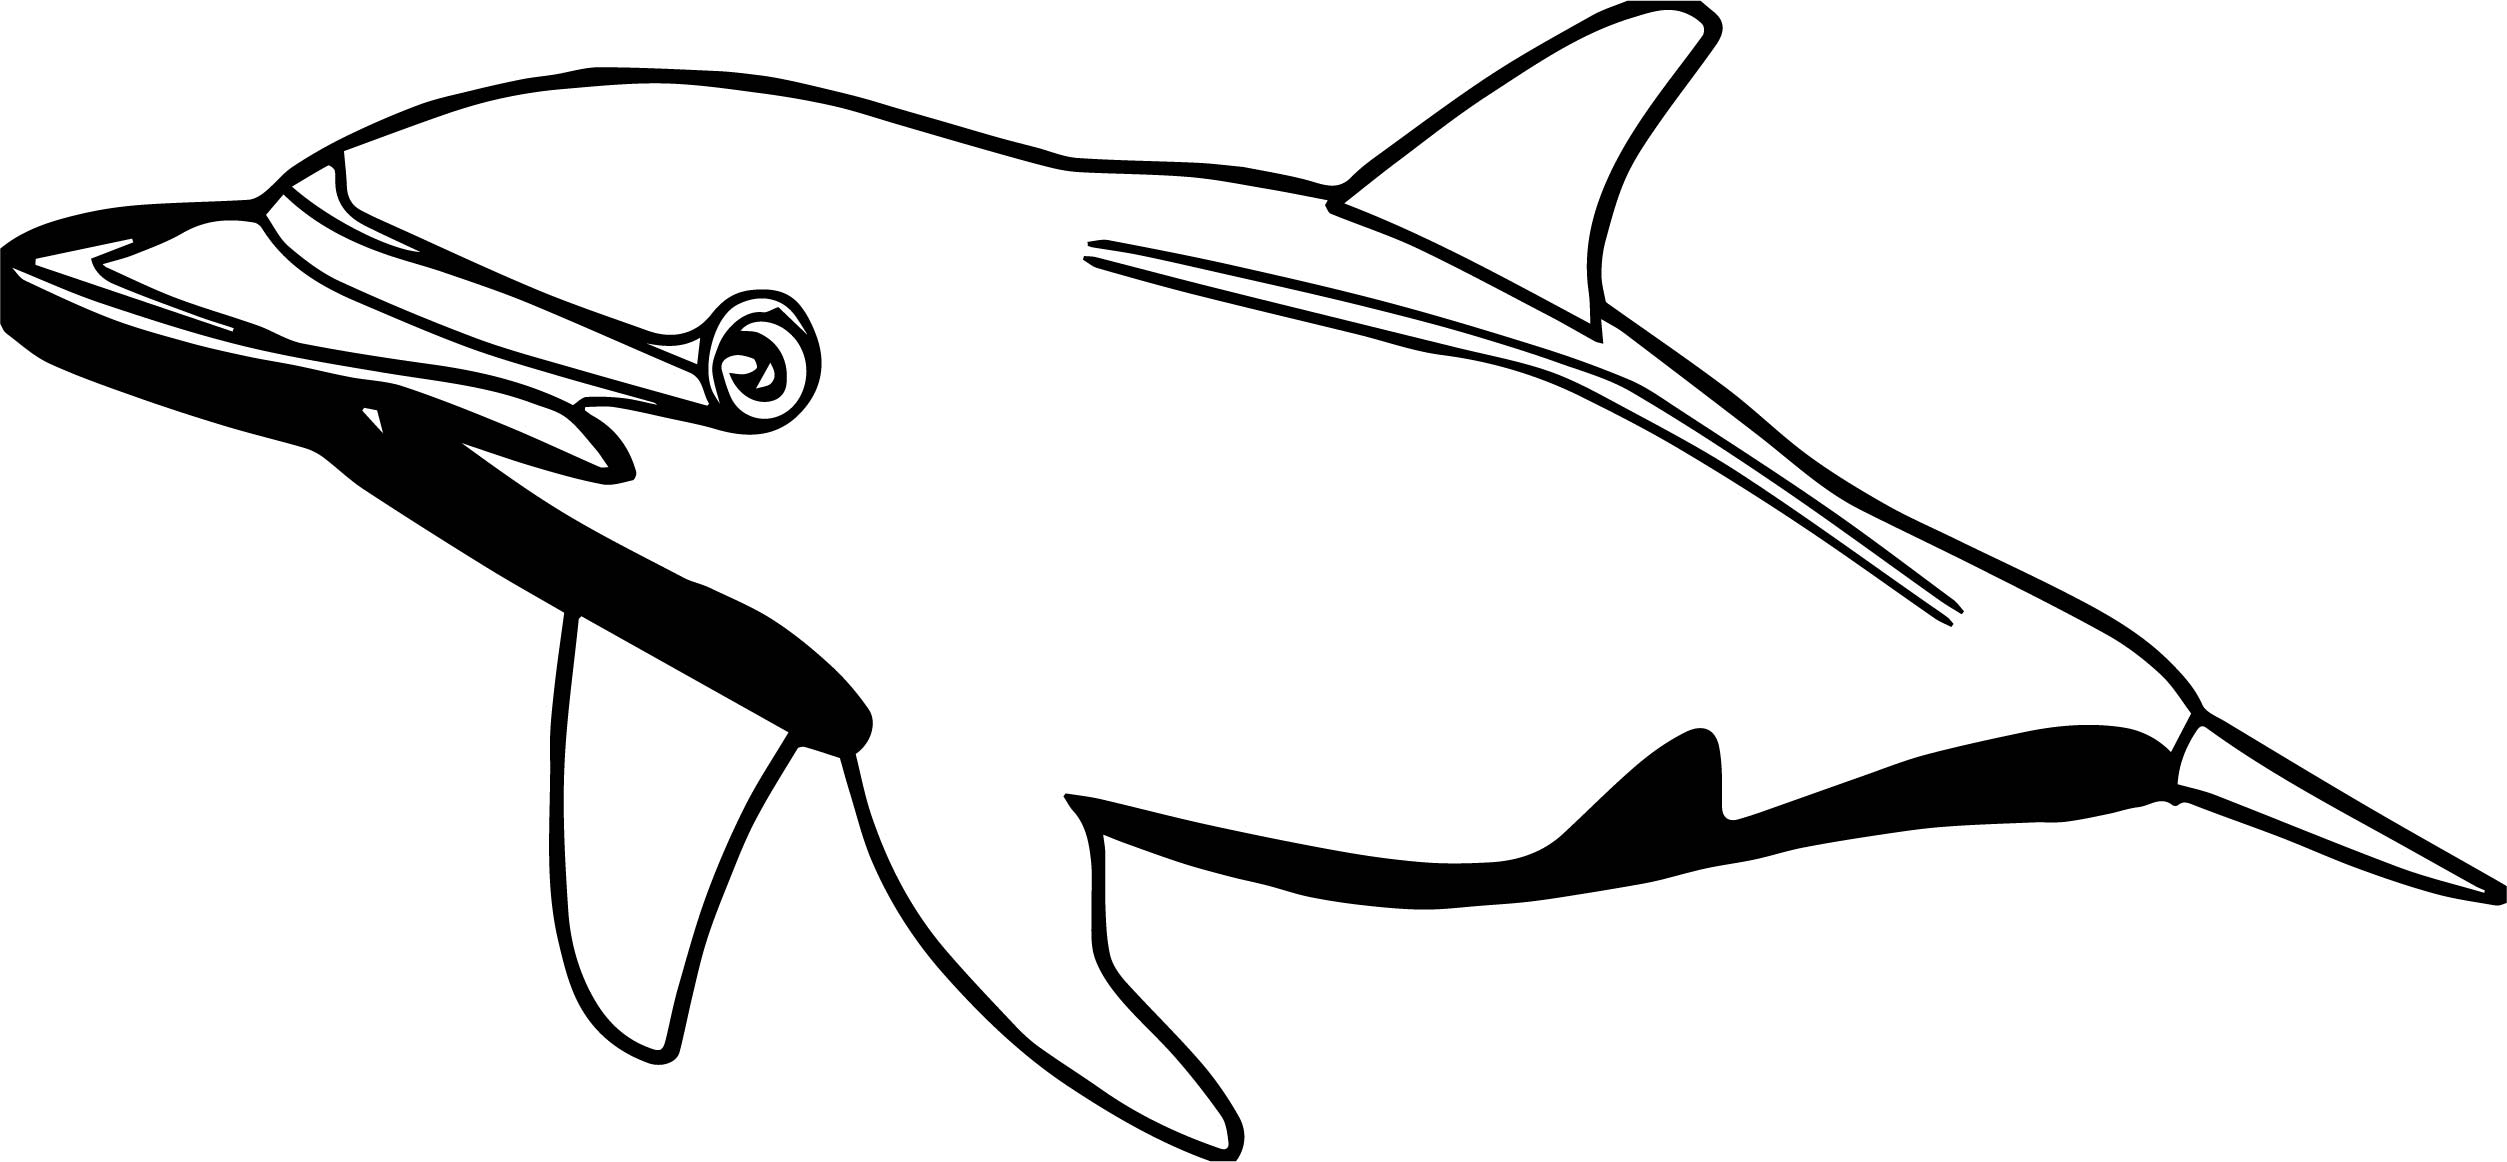 Dolphin Coloring Page 007